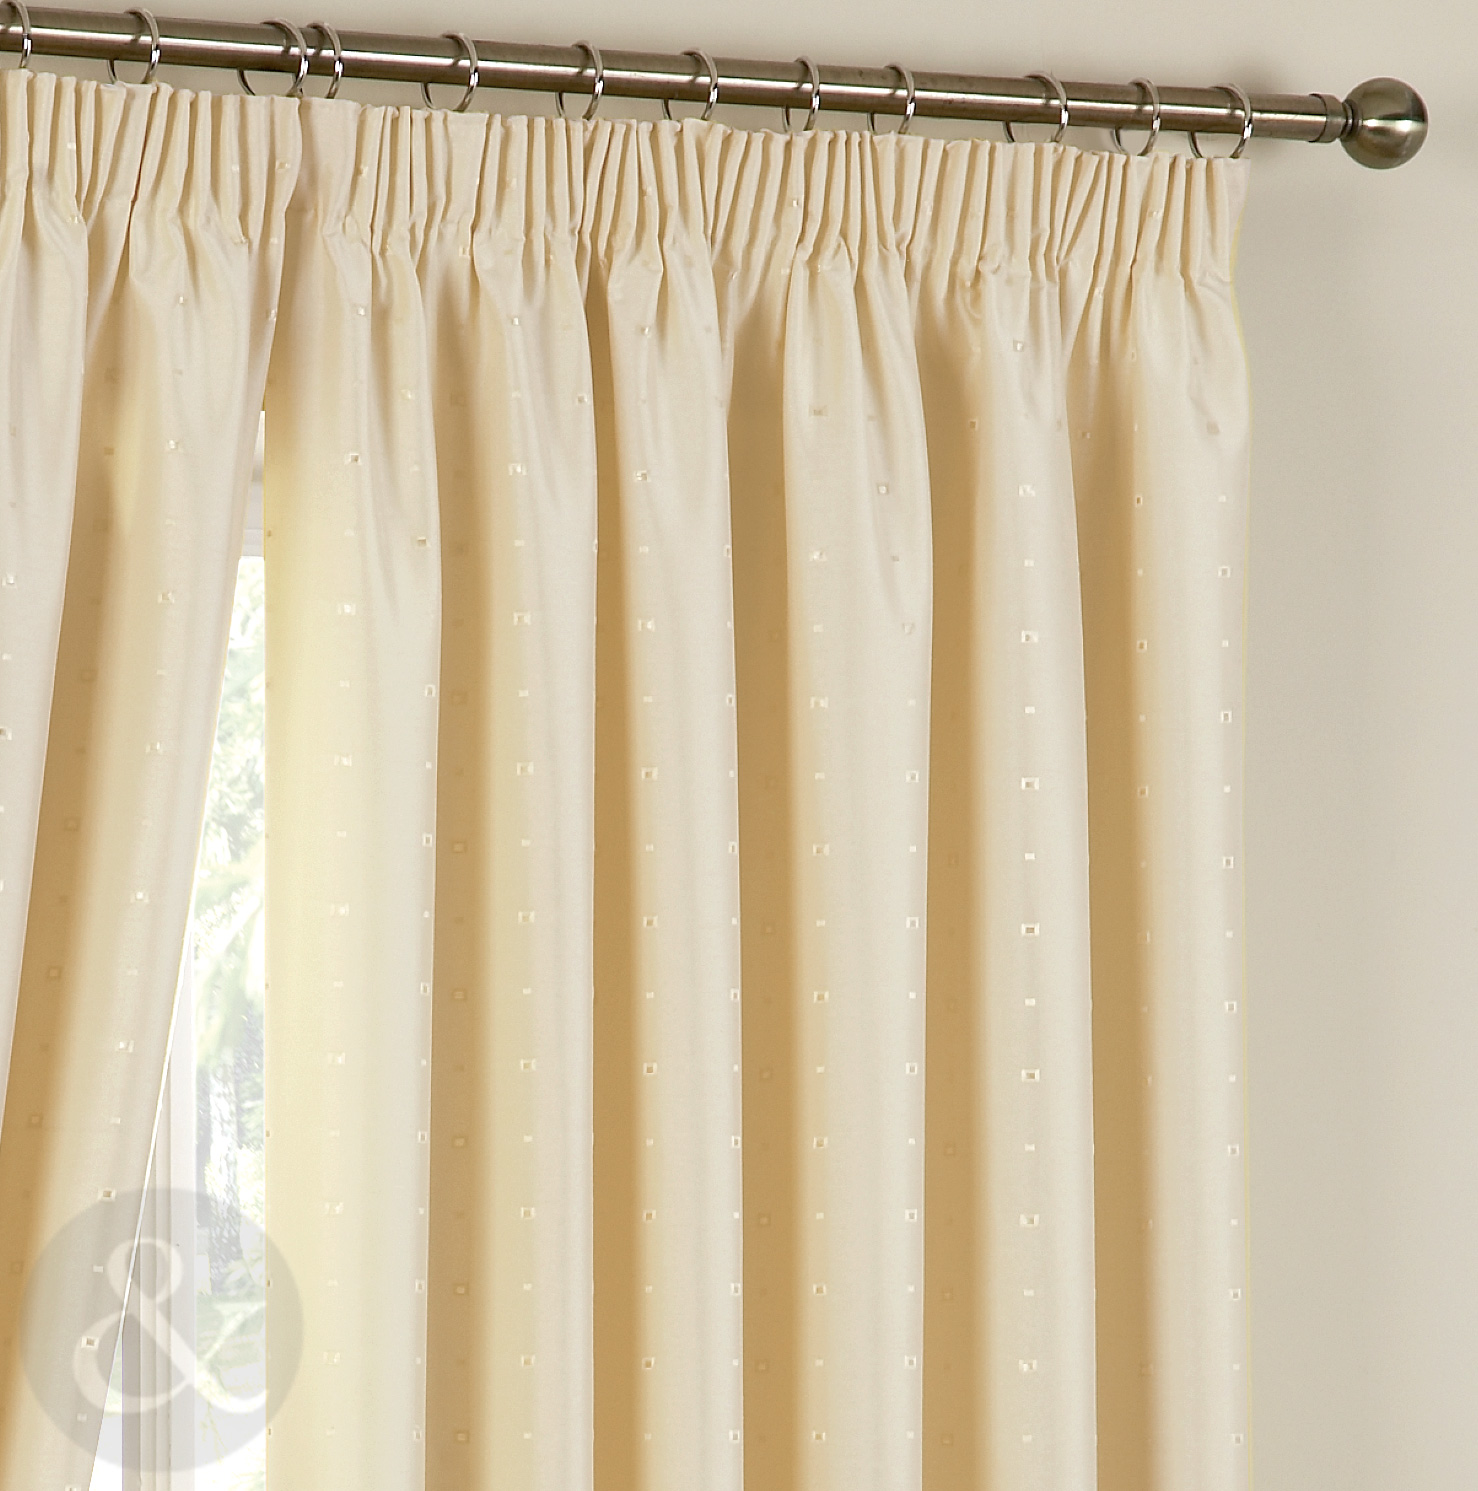 Luxury curtains heavy weight jacquard pencil pleat fully lined curtain